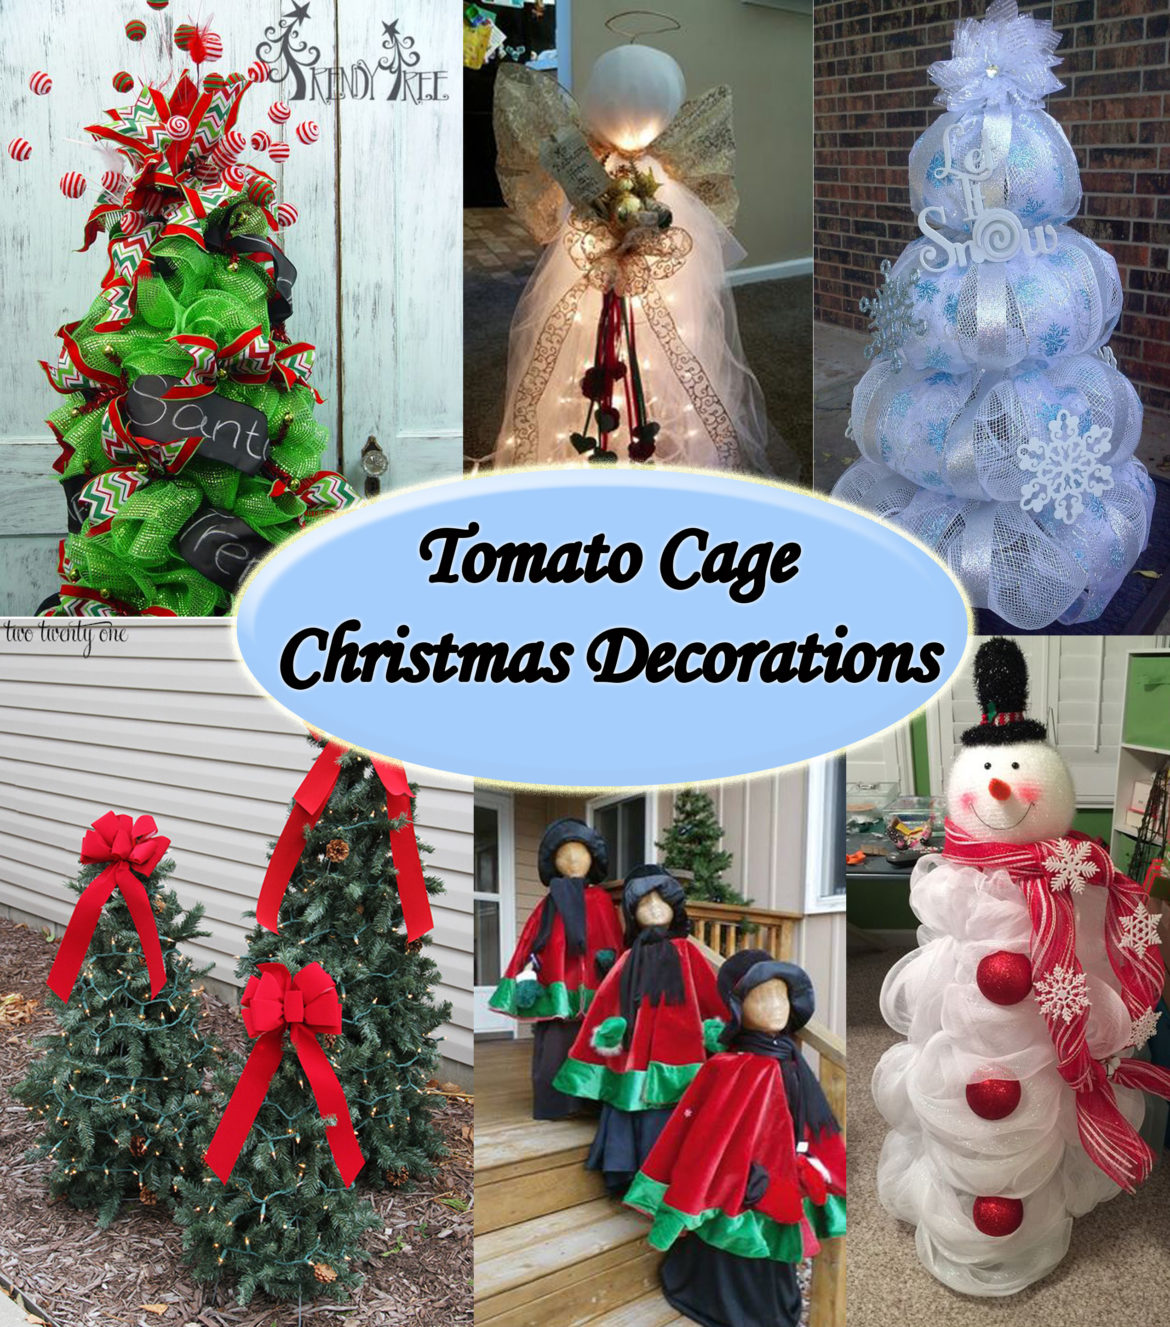 tomato-cage-christmas-decorations